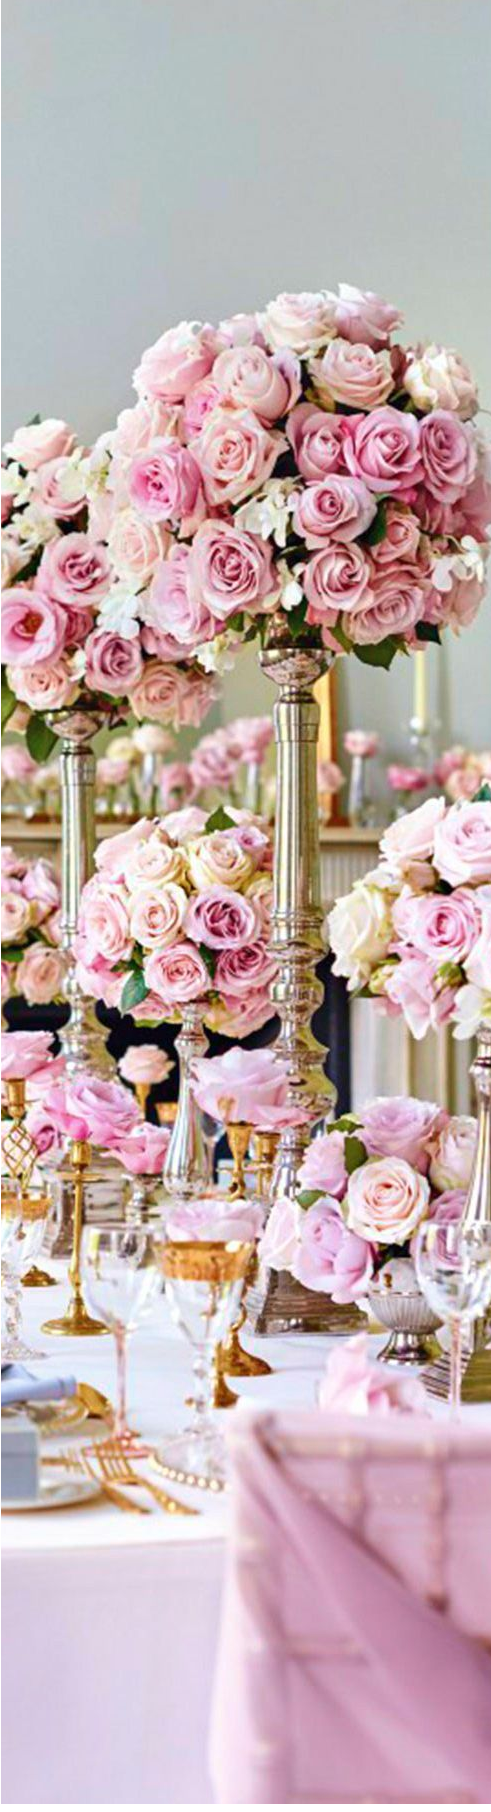 Roses and silver table centerpiece | wedding. | Pinterest | Silver ...